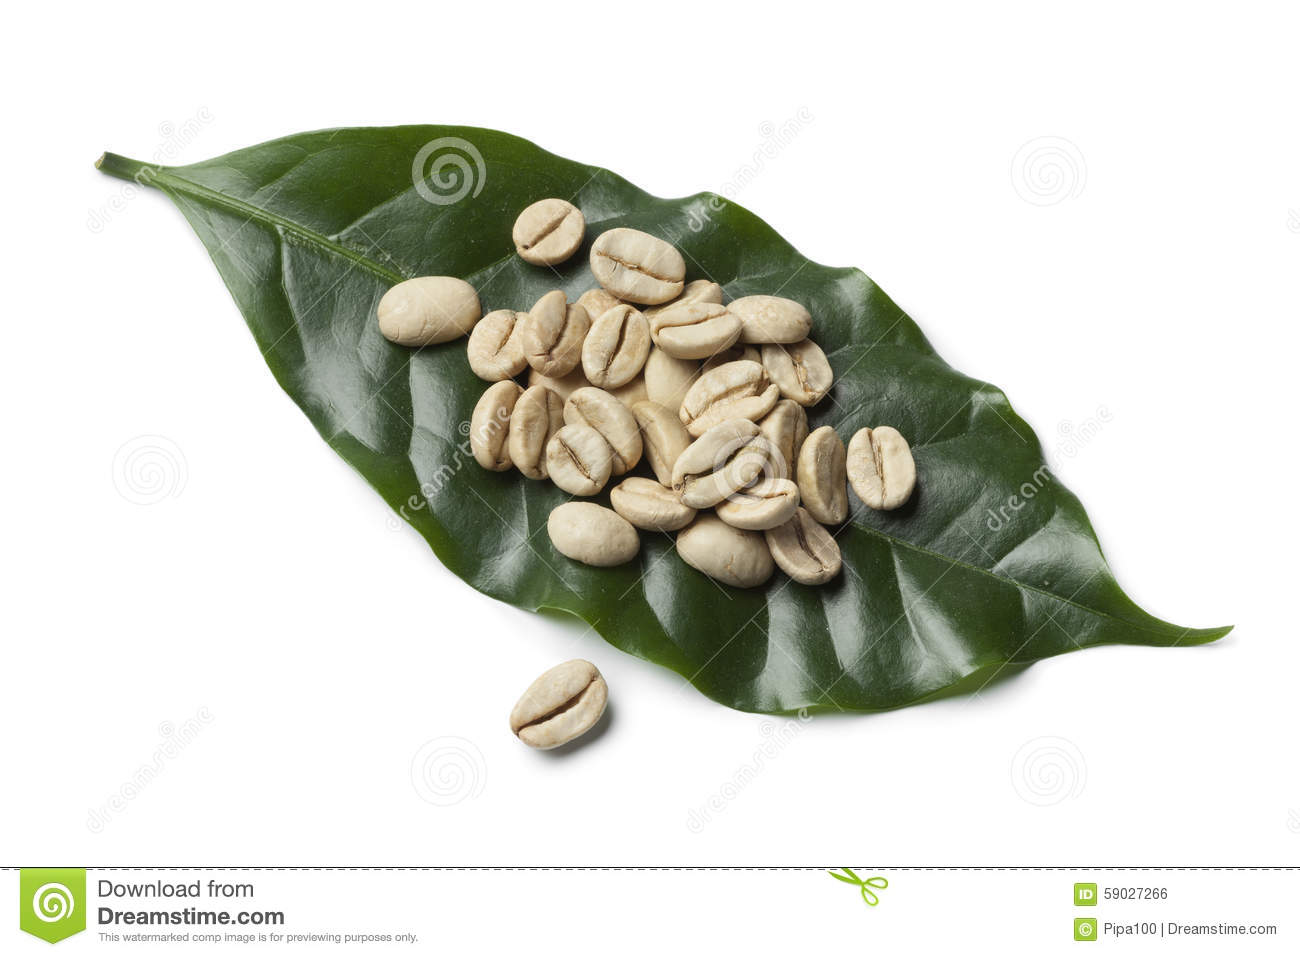 Unroasted Organic Arabica Coffee Beans Indian Malabar Green Unroasted Coffee Beans Stock Photo